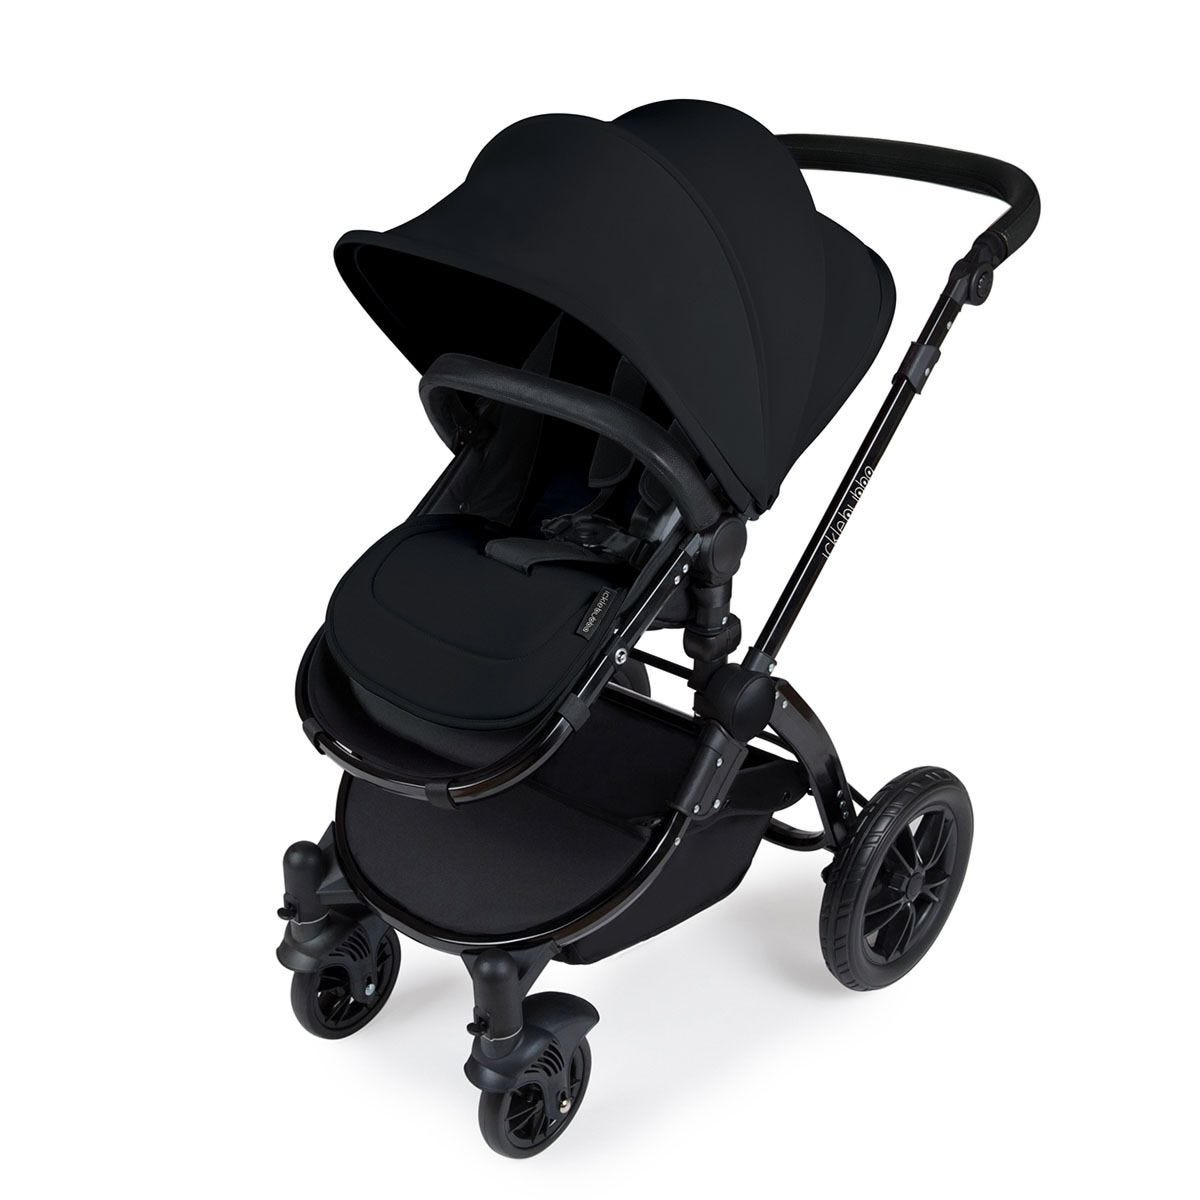 Ickle Bubba Stomp V3 All in One Travel System with Isofix Base - Black on Black with Black Handles